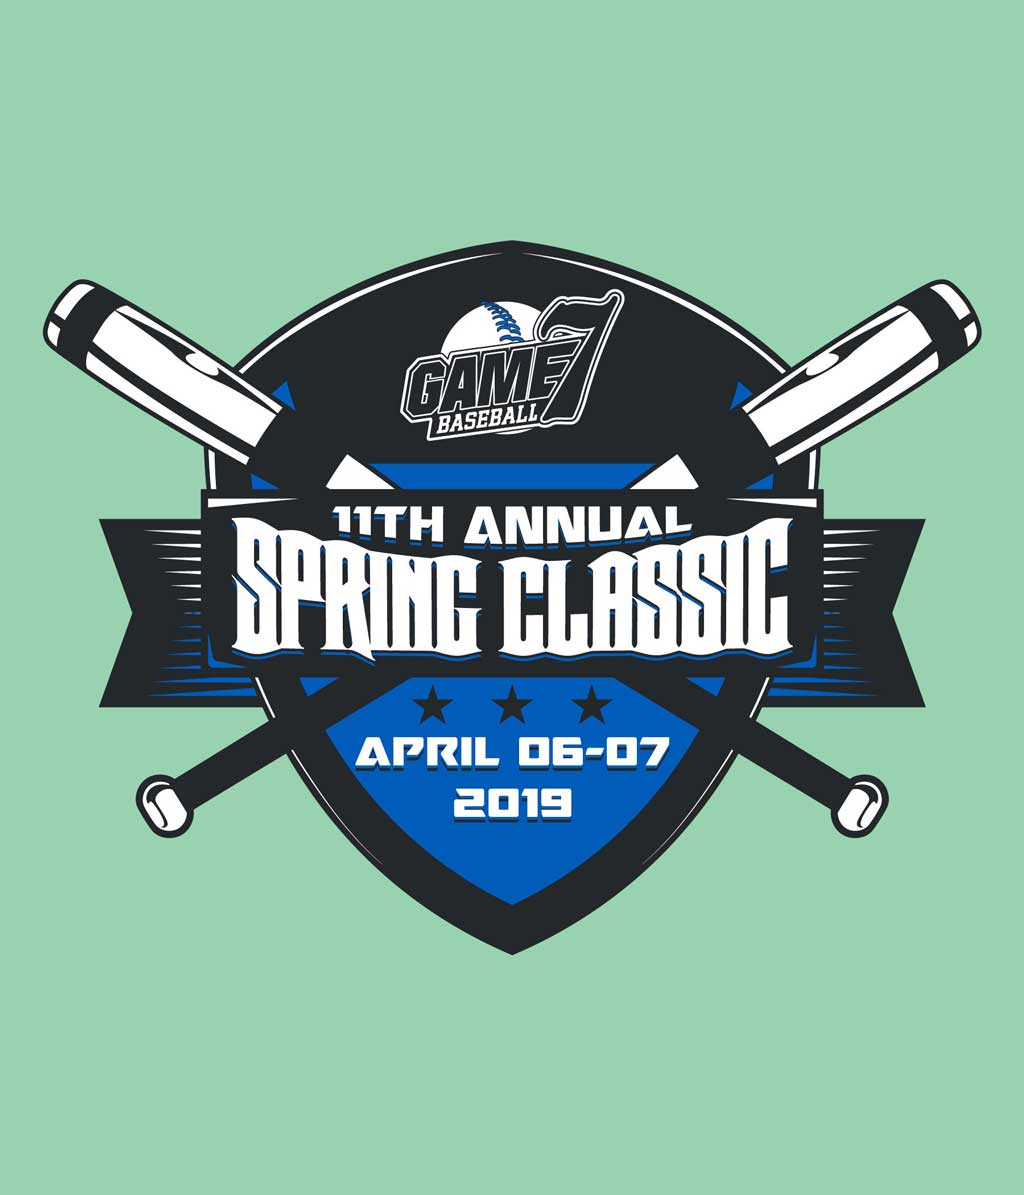 11th Annual TN Game 7 Spring Classic Logo